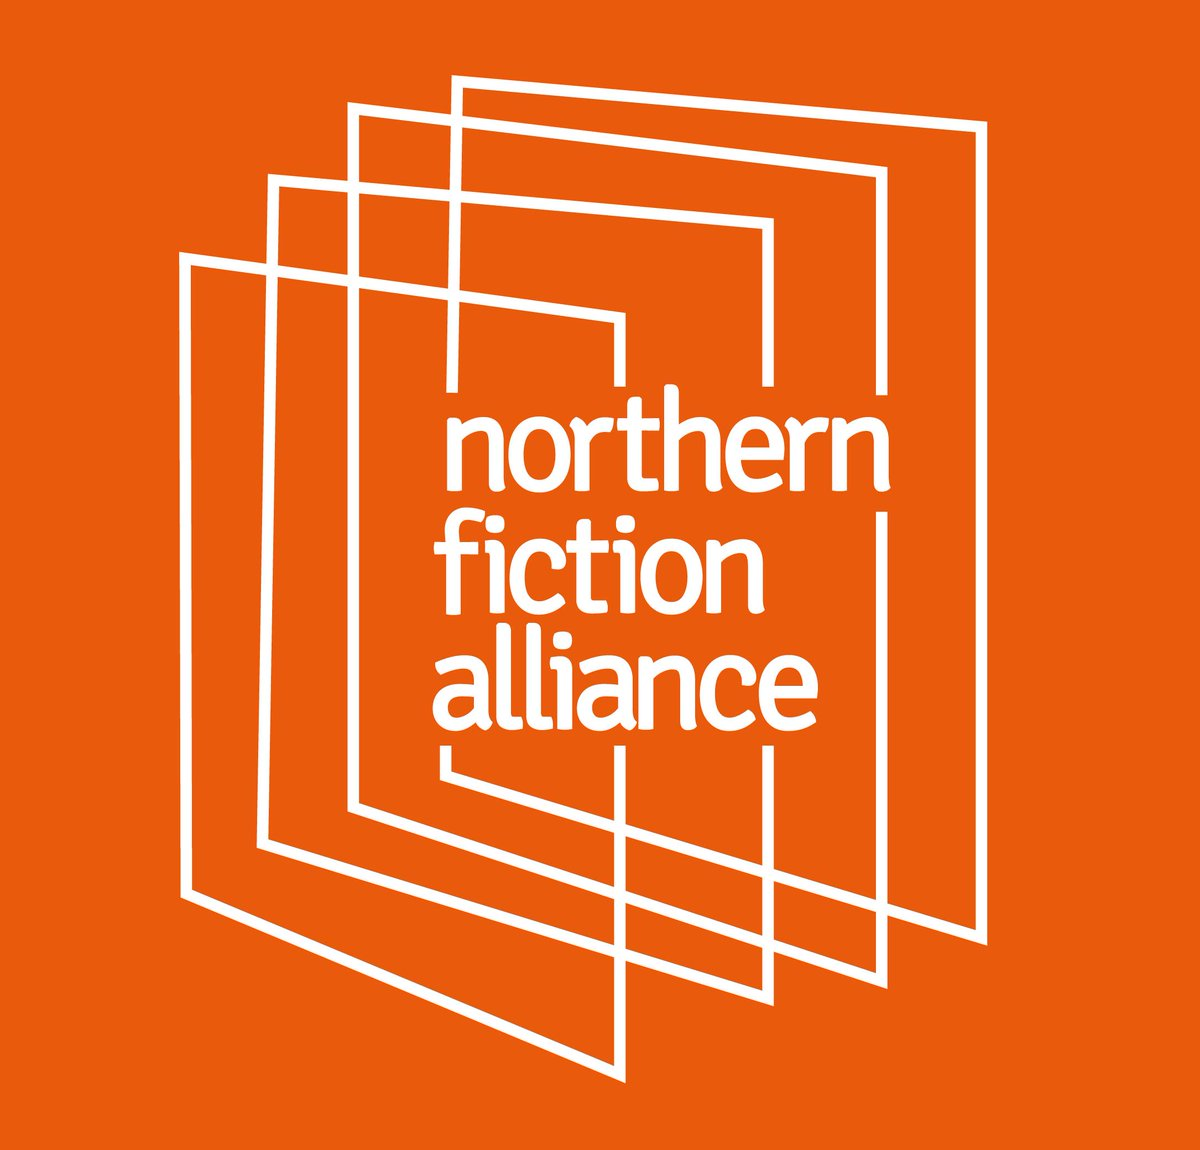 If youre looking for #NorthernFictionAlliance events we have two editor panels coming up: one this weekend at @SabotageReviews Saboteur Fest in #Birmingham and one at @Mslexia #Mslexicon in #Leeds in July, hear from some of the Norths innovative indies: commapress.co.uk/events